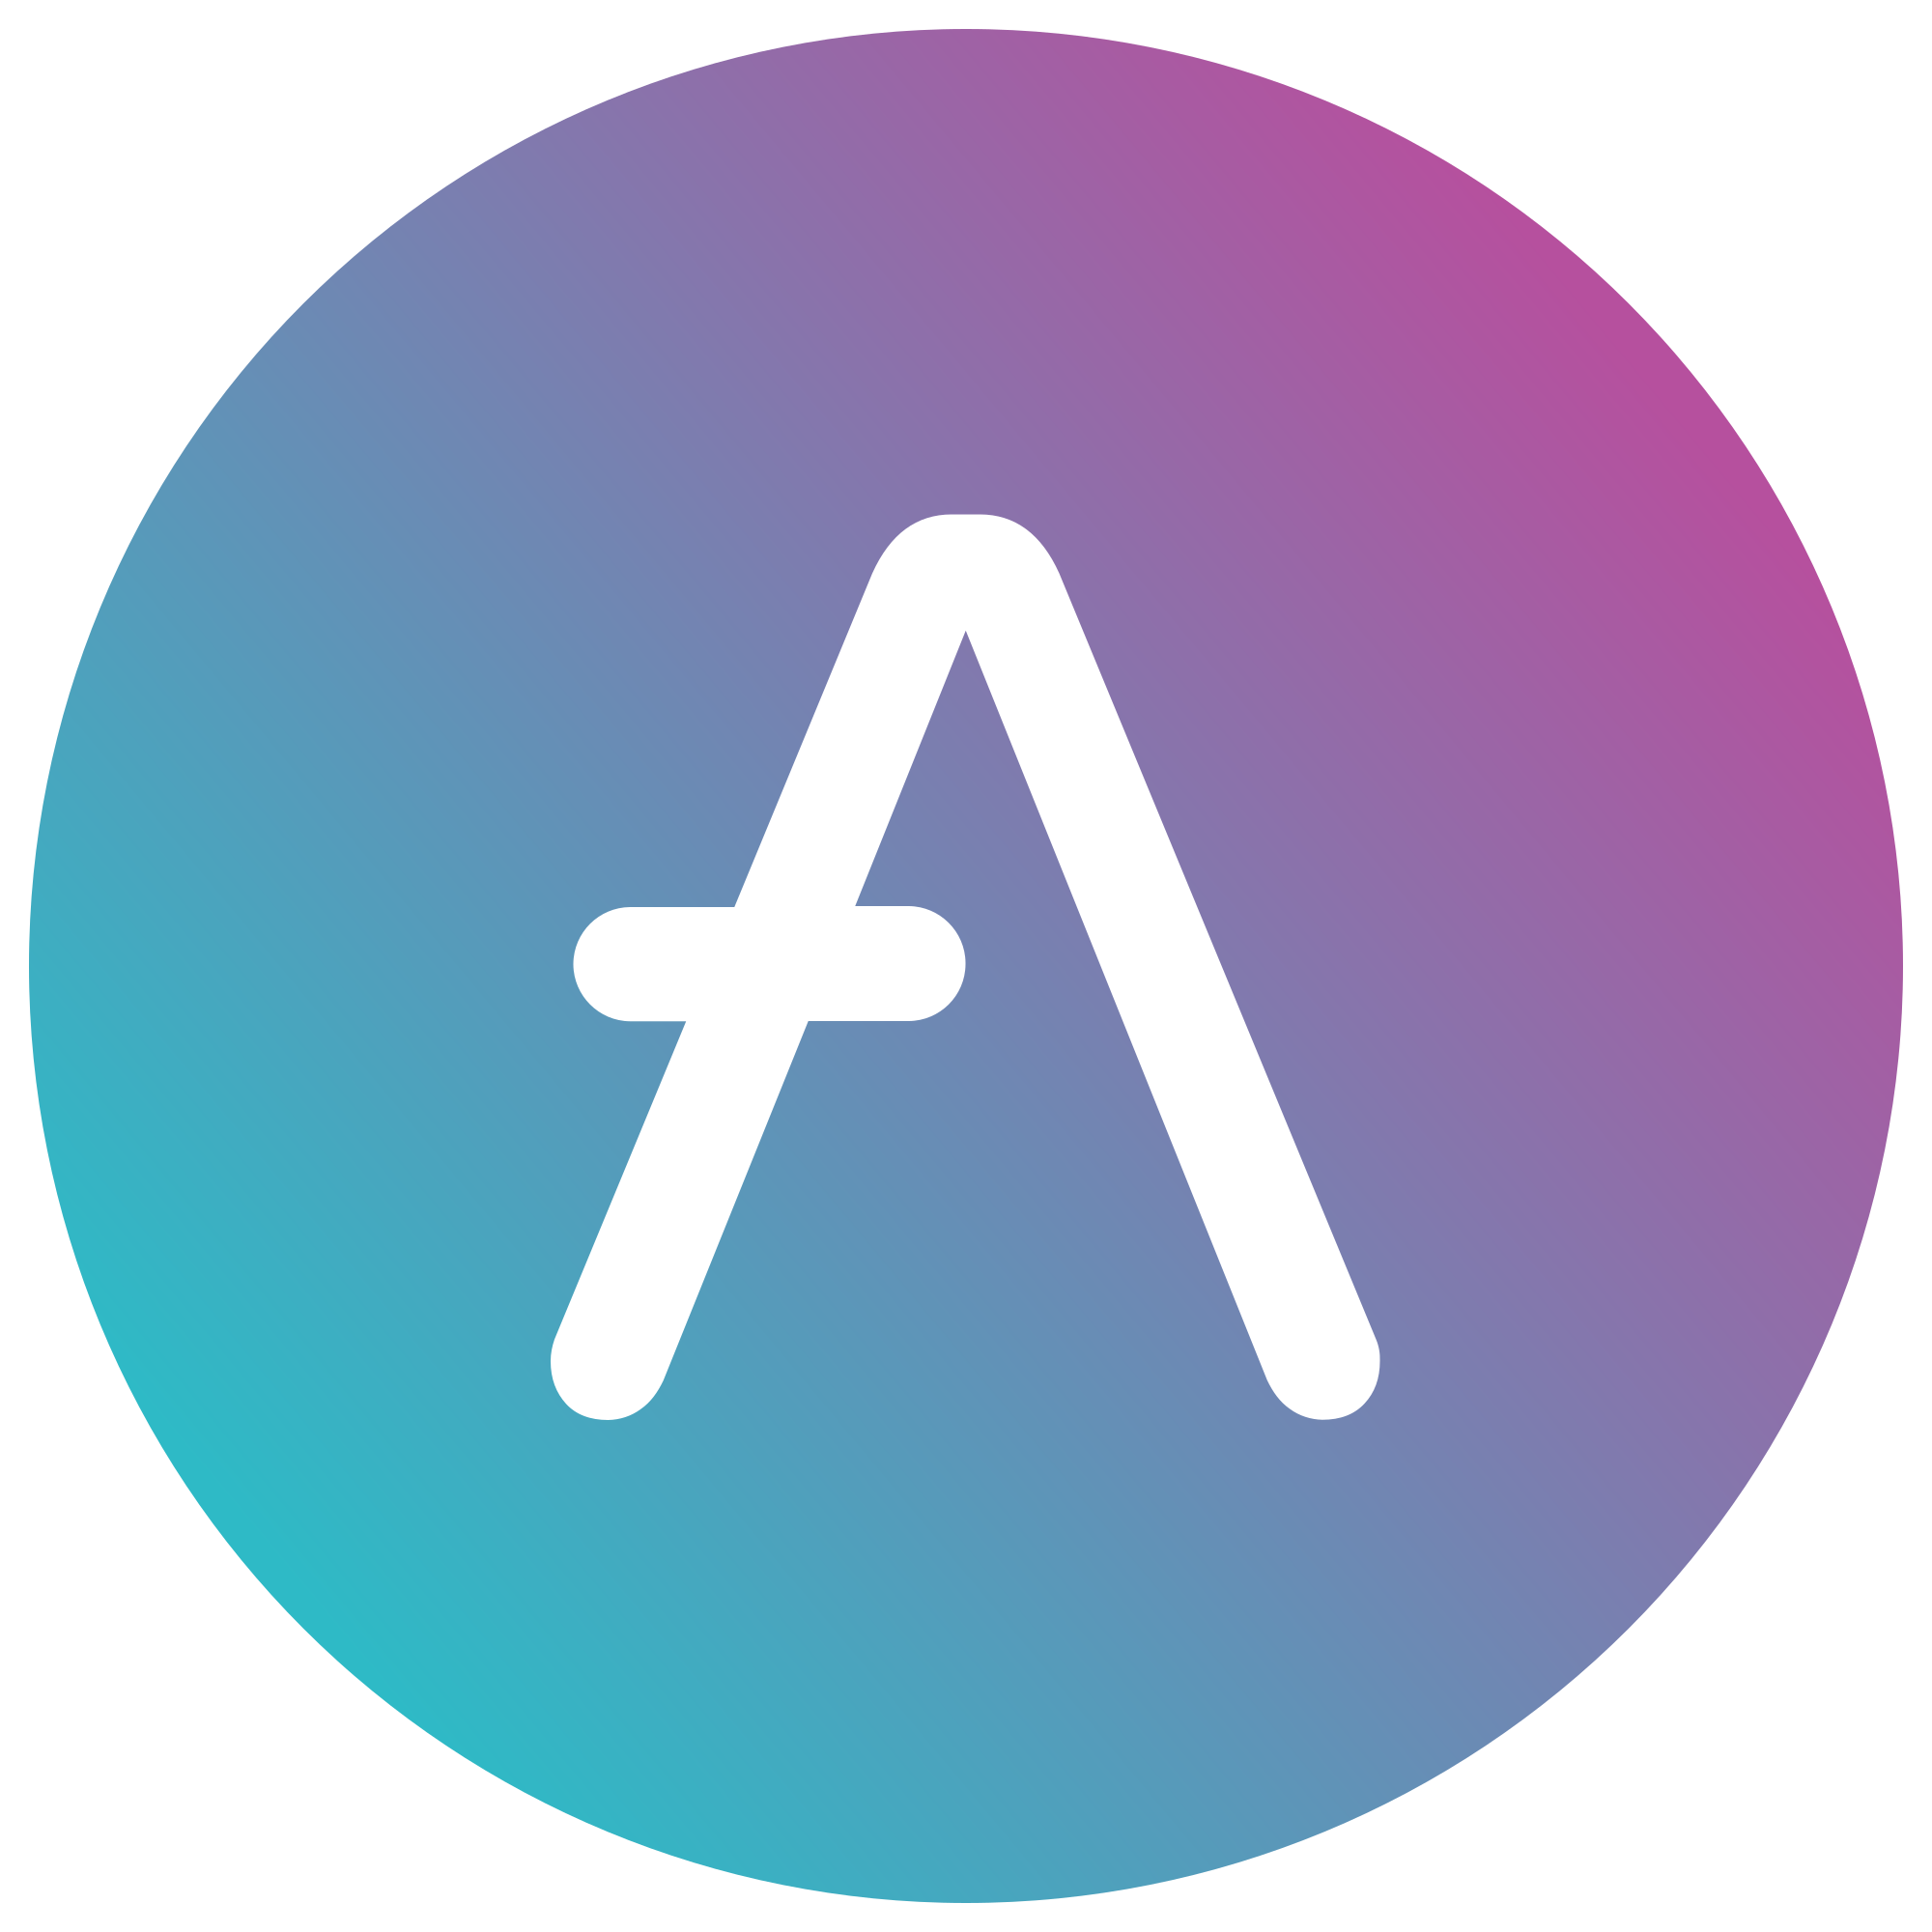 Aave coin logo